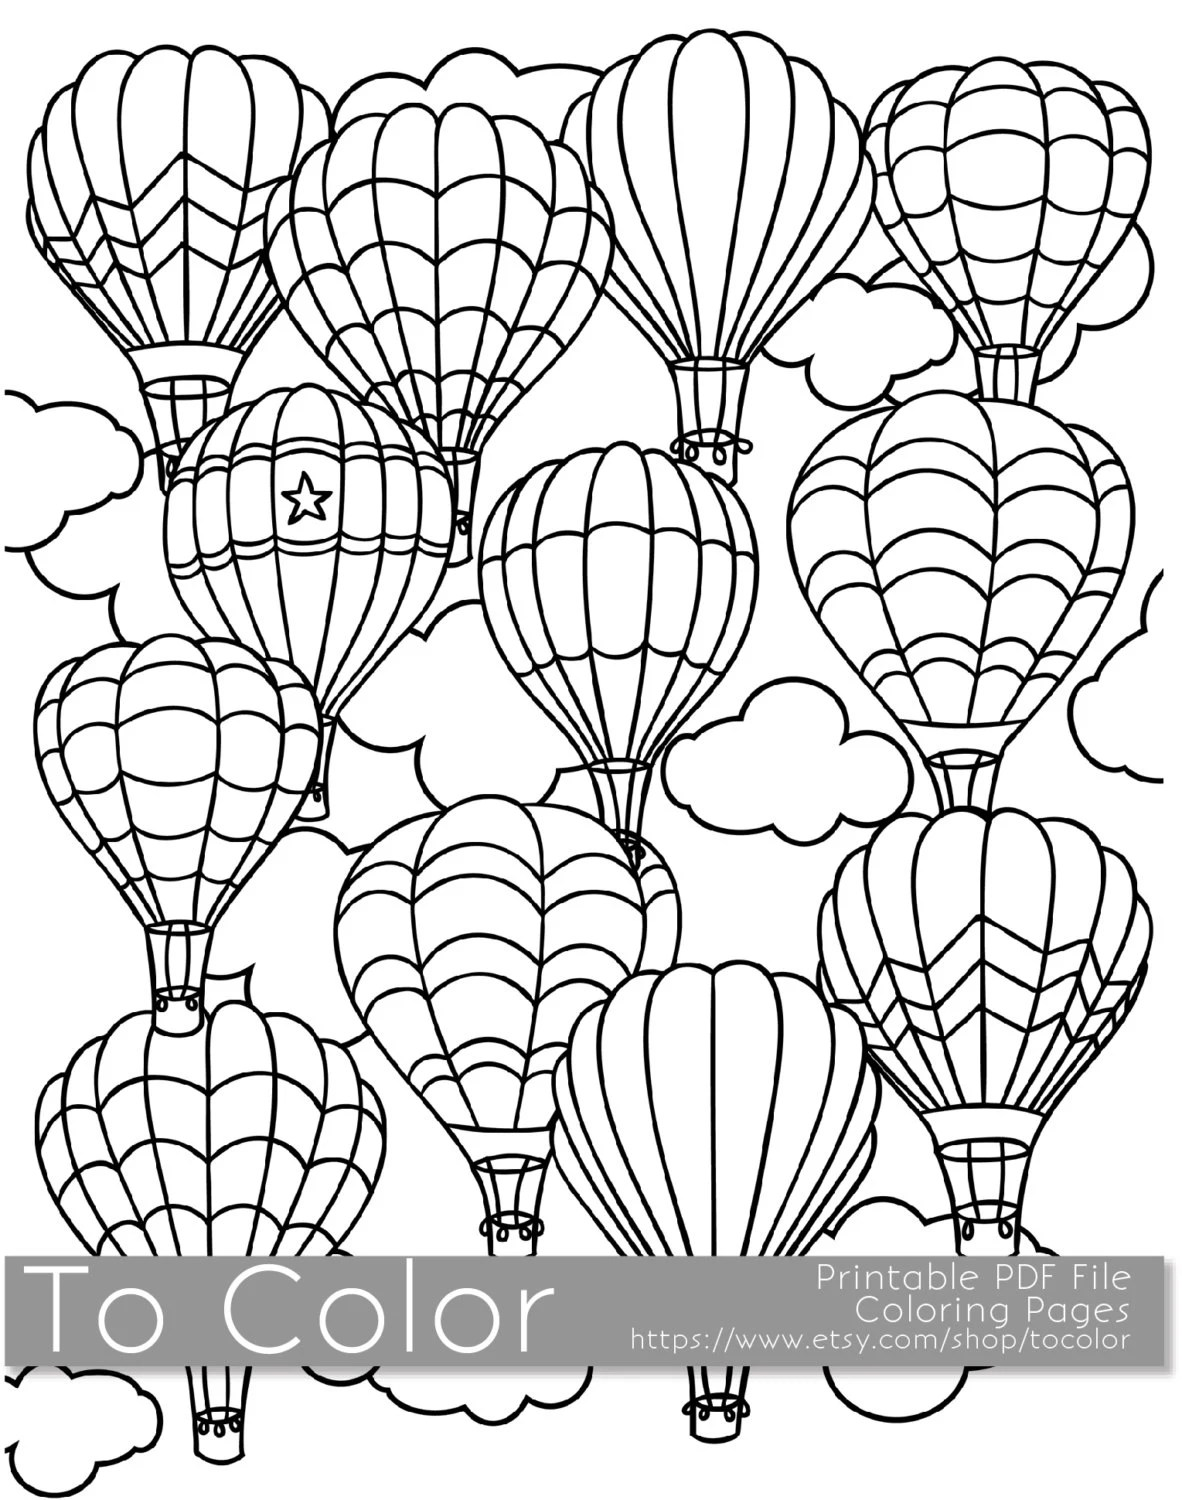 Items similar to Printable Hot Air Balloon Coloring Page